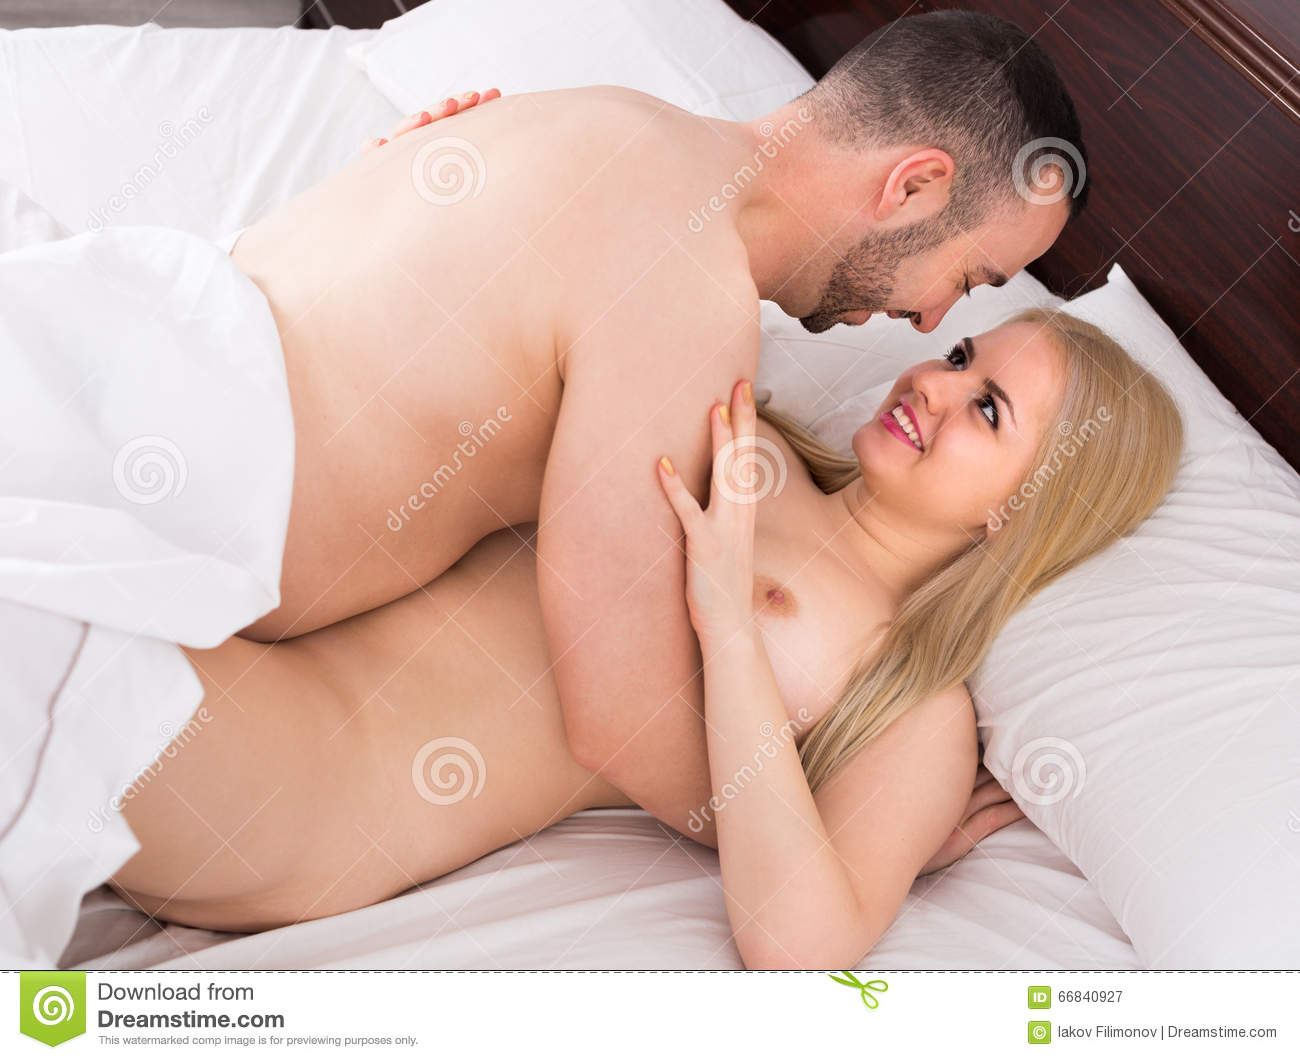 Naked couple sex on bed